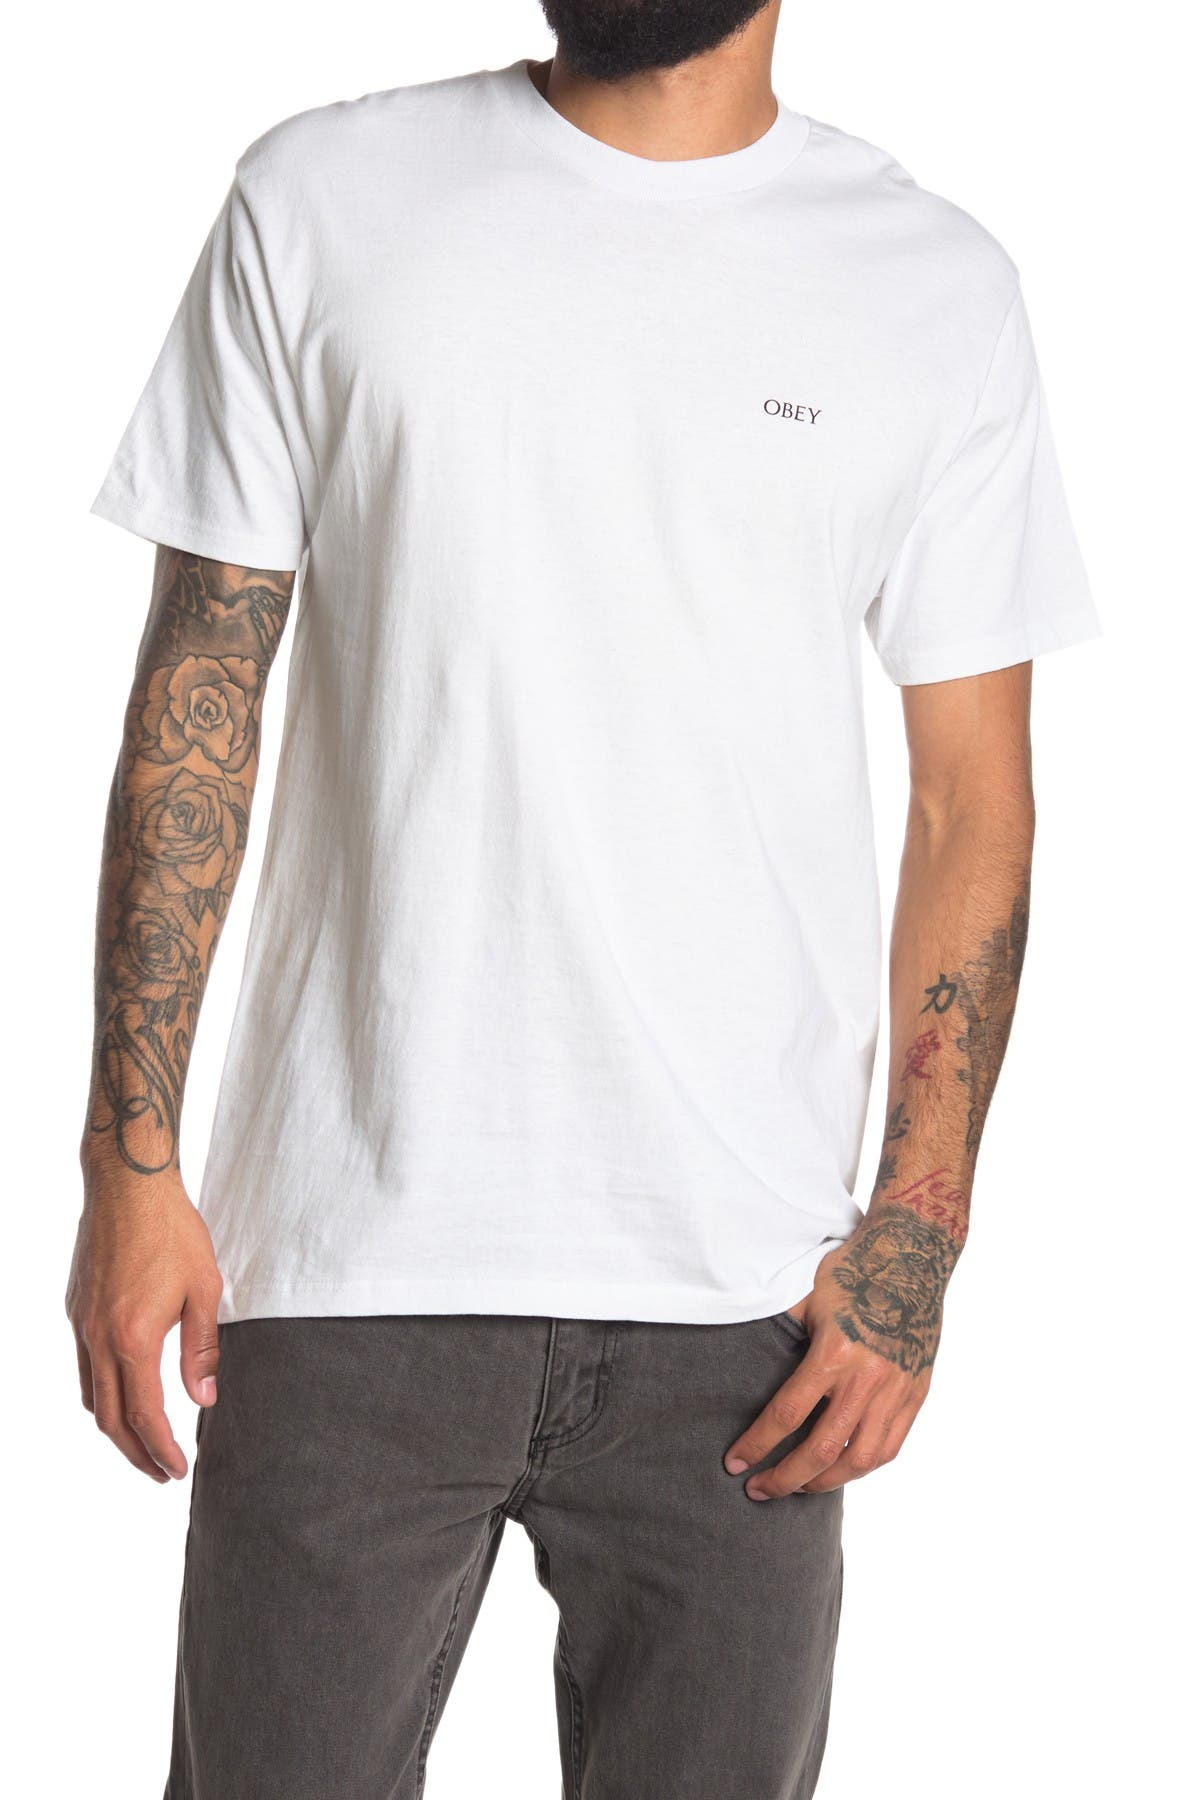 Image of Obey Collage Logo T-Shirt